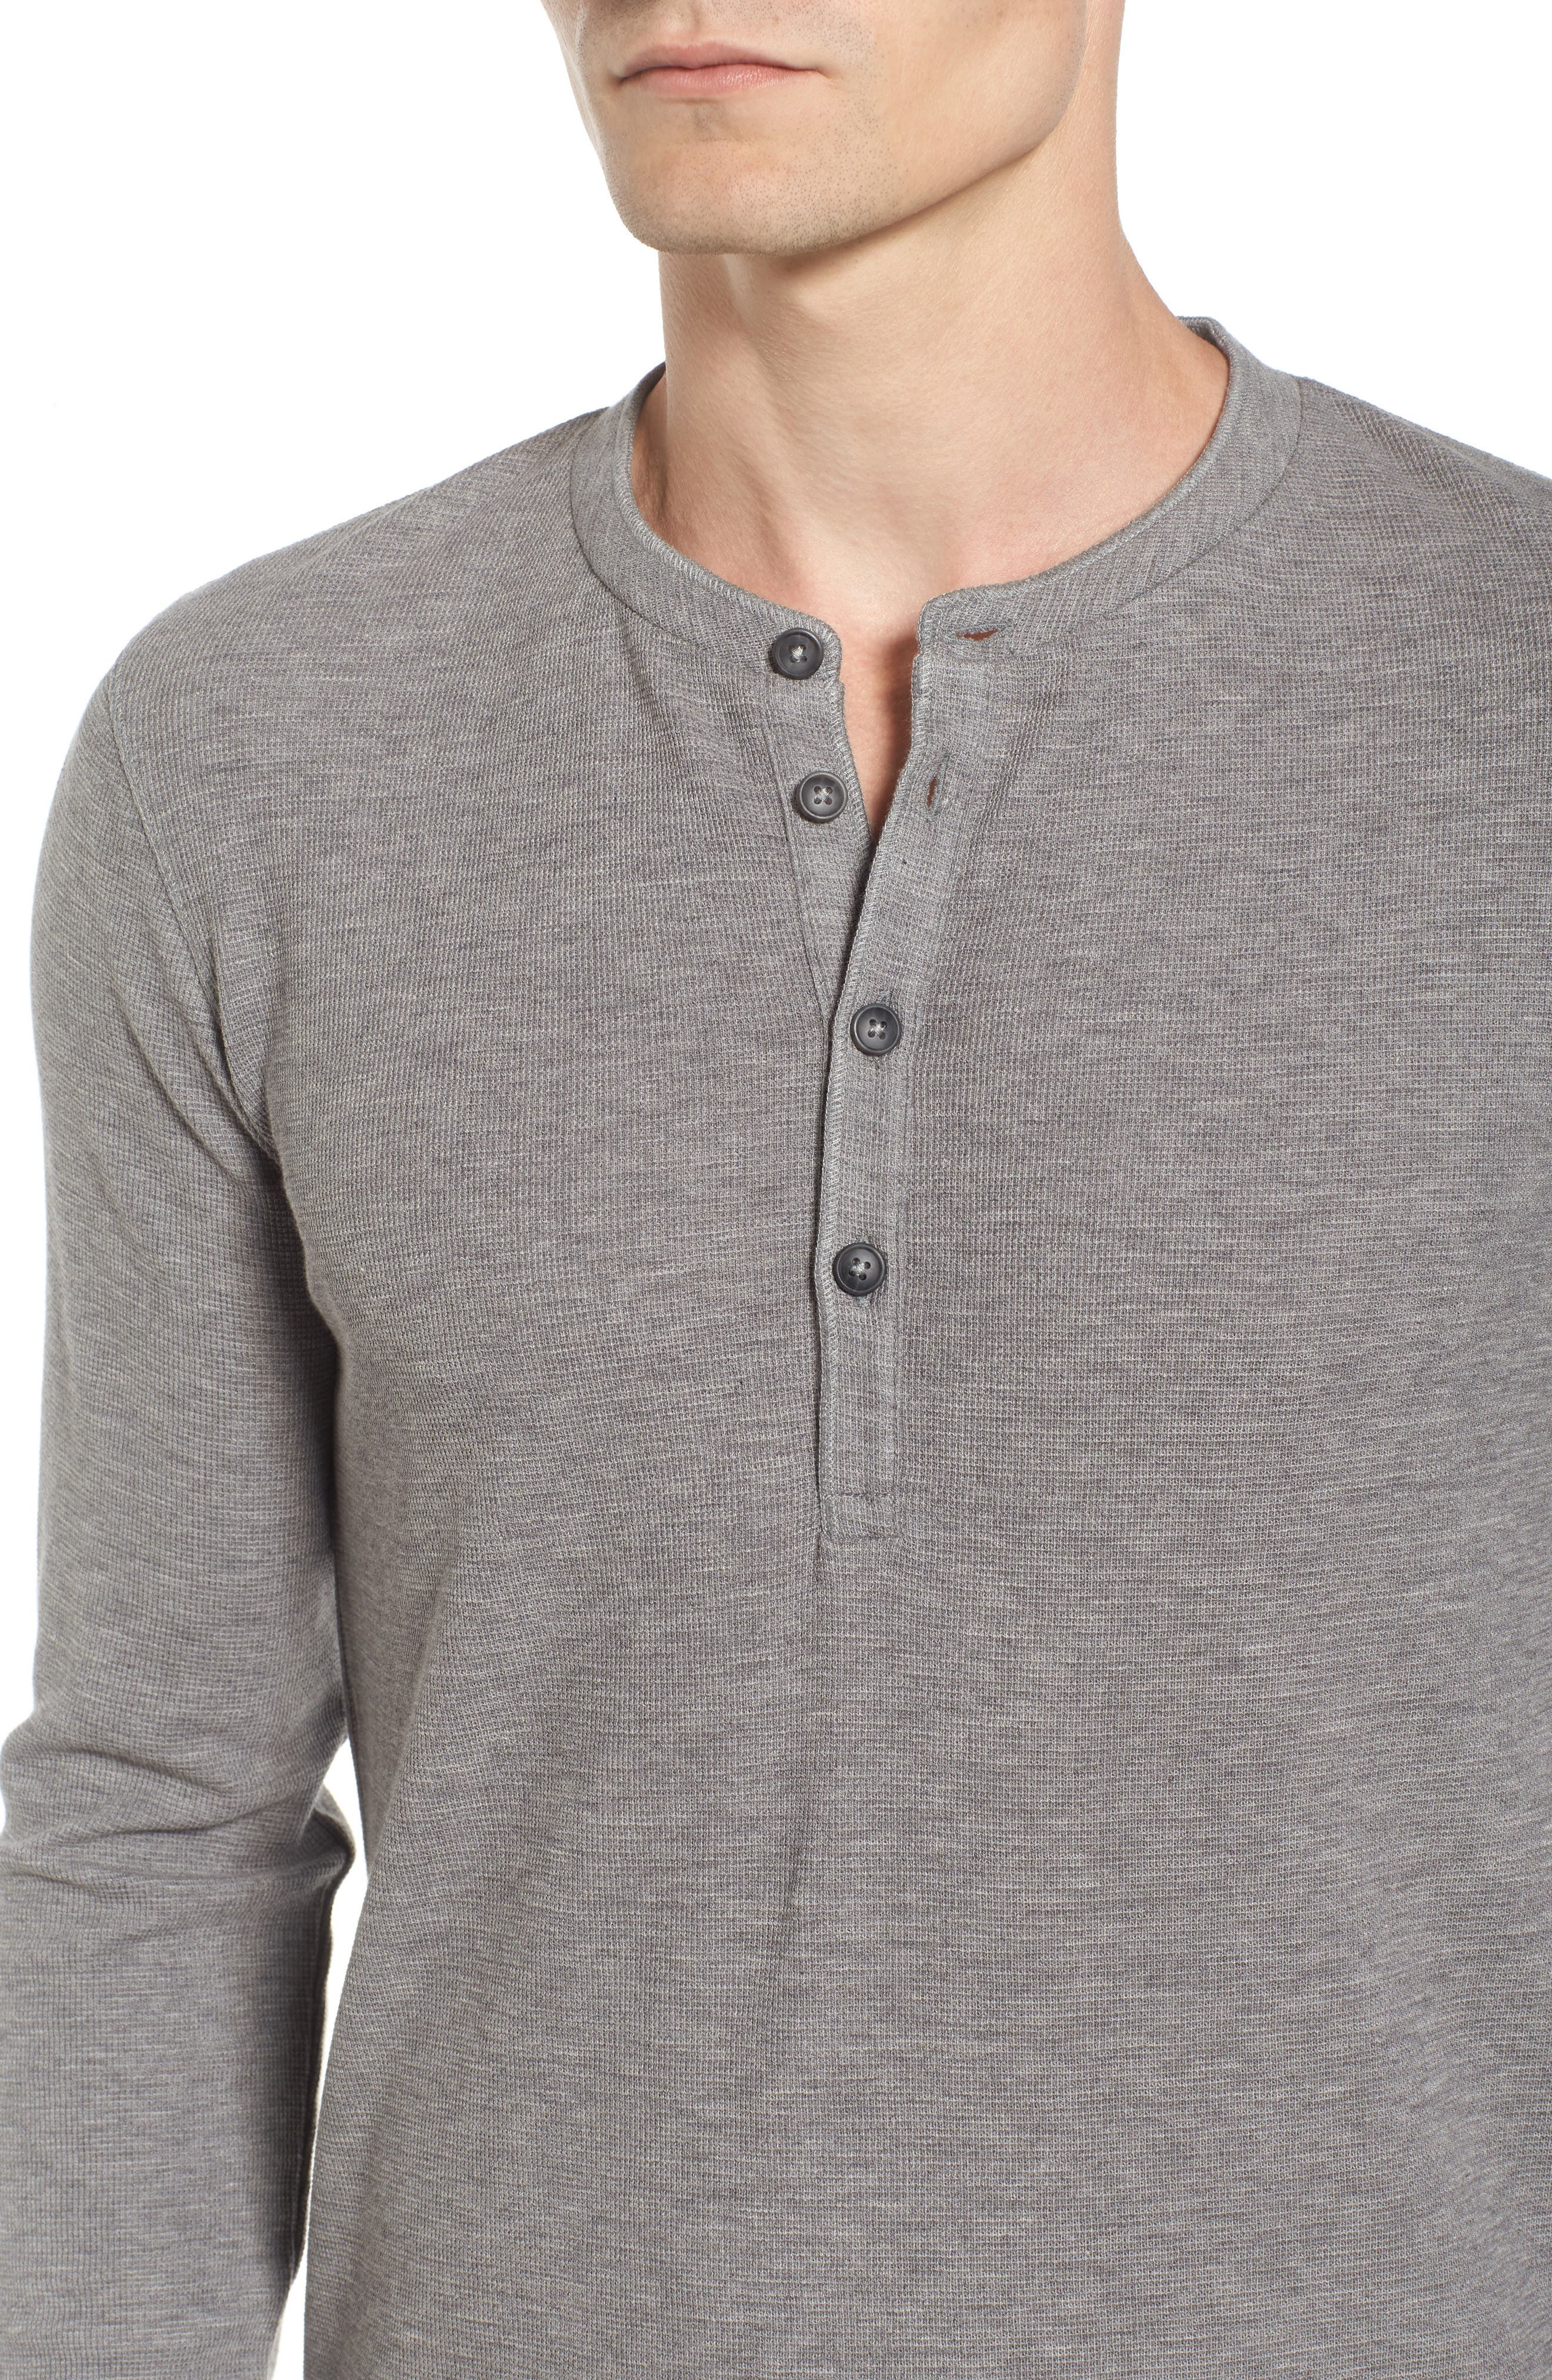 Topsider Thermal Henley,                             Alternate thumbnail 5, color,                             Light Pastel/ Grey